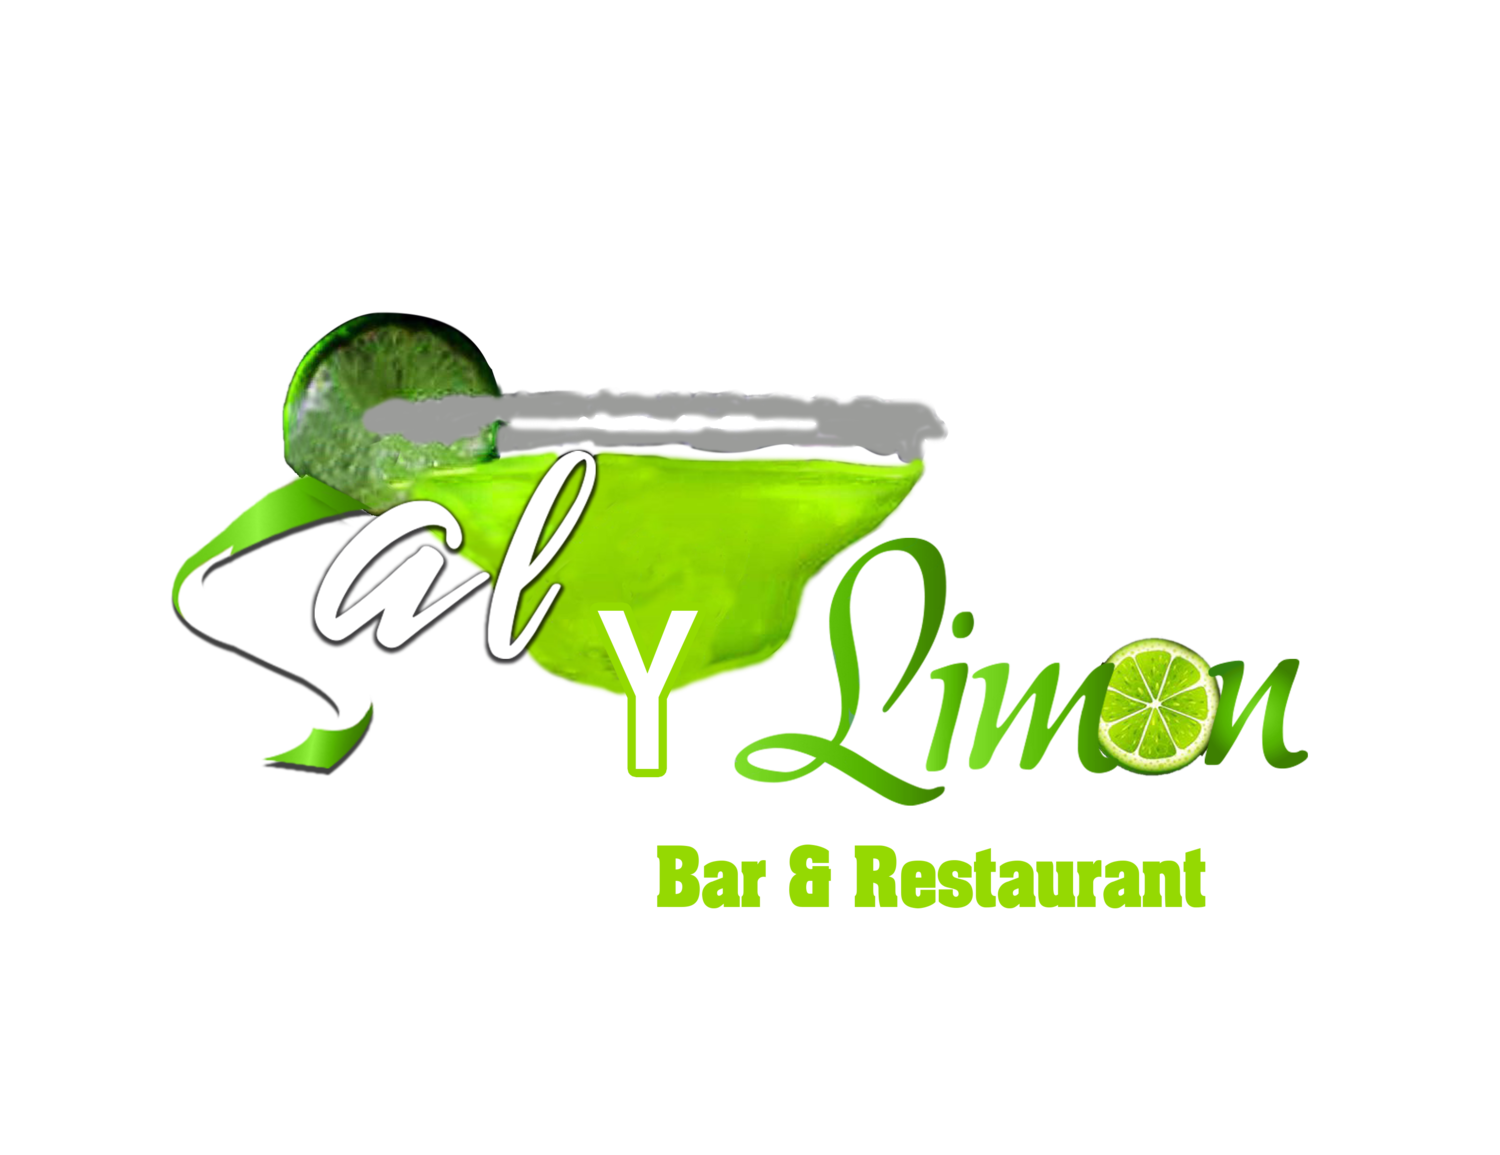 Cantina sal y lim. Cocktails clipart sangria glass